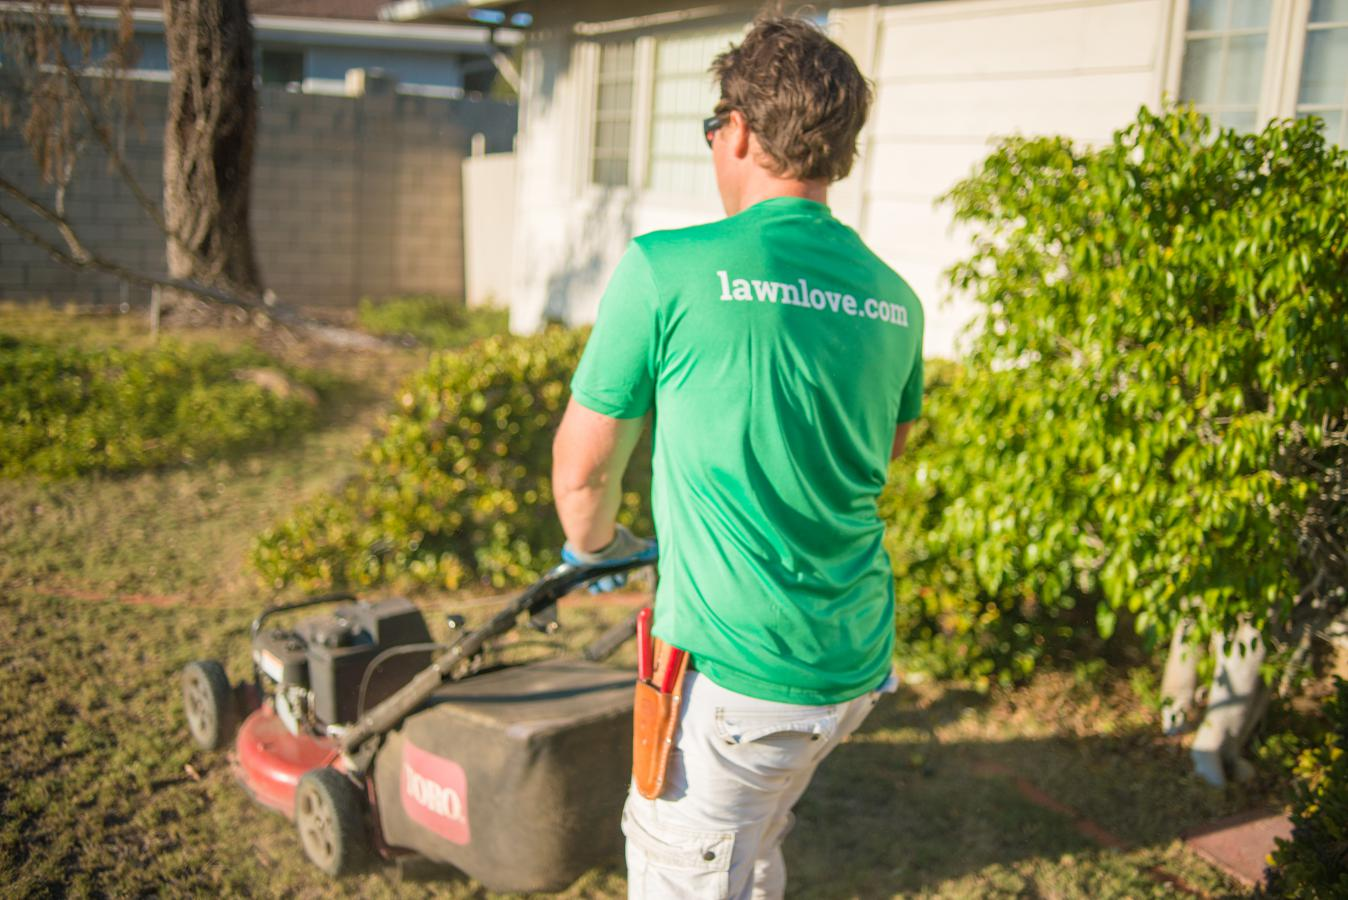 A digital marketplace for lawn care and gardening services